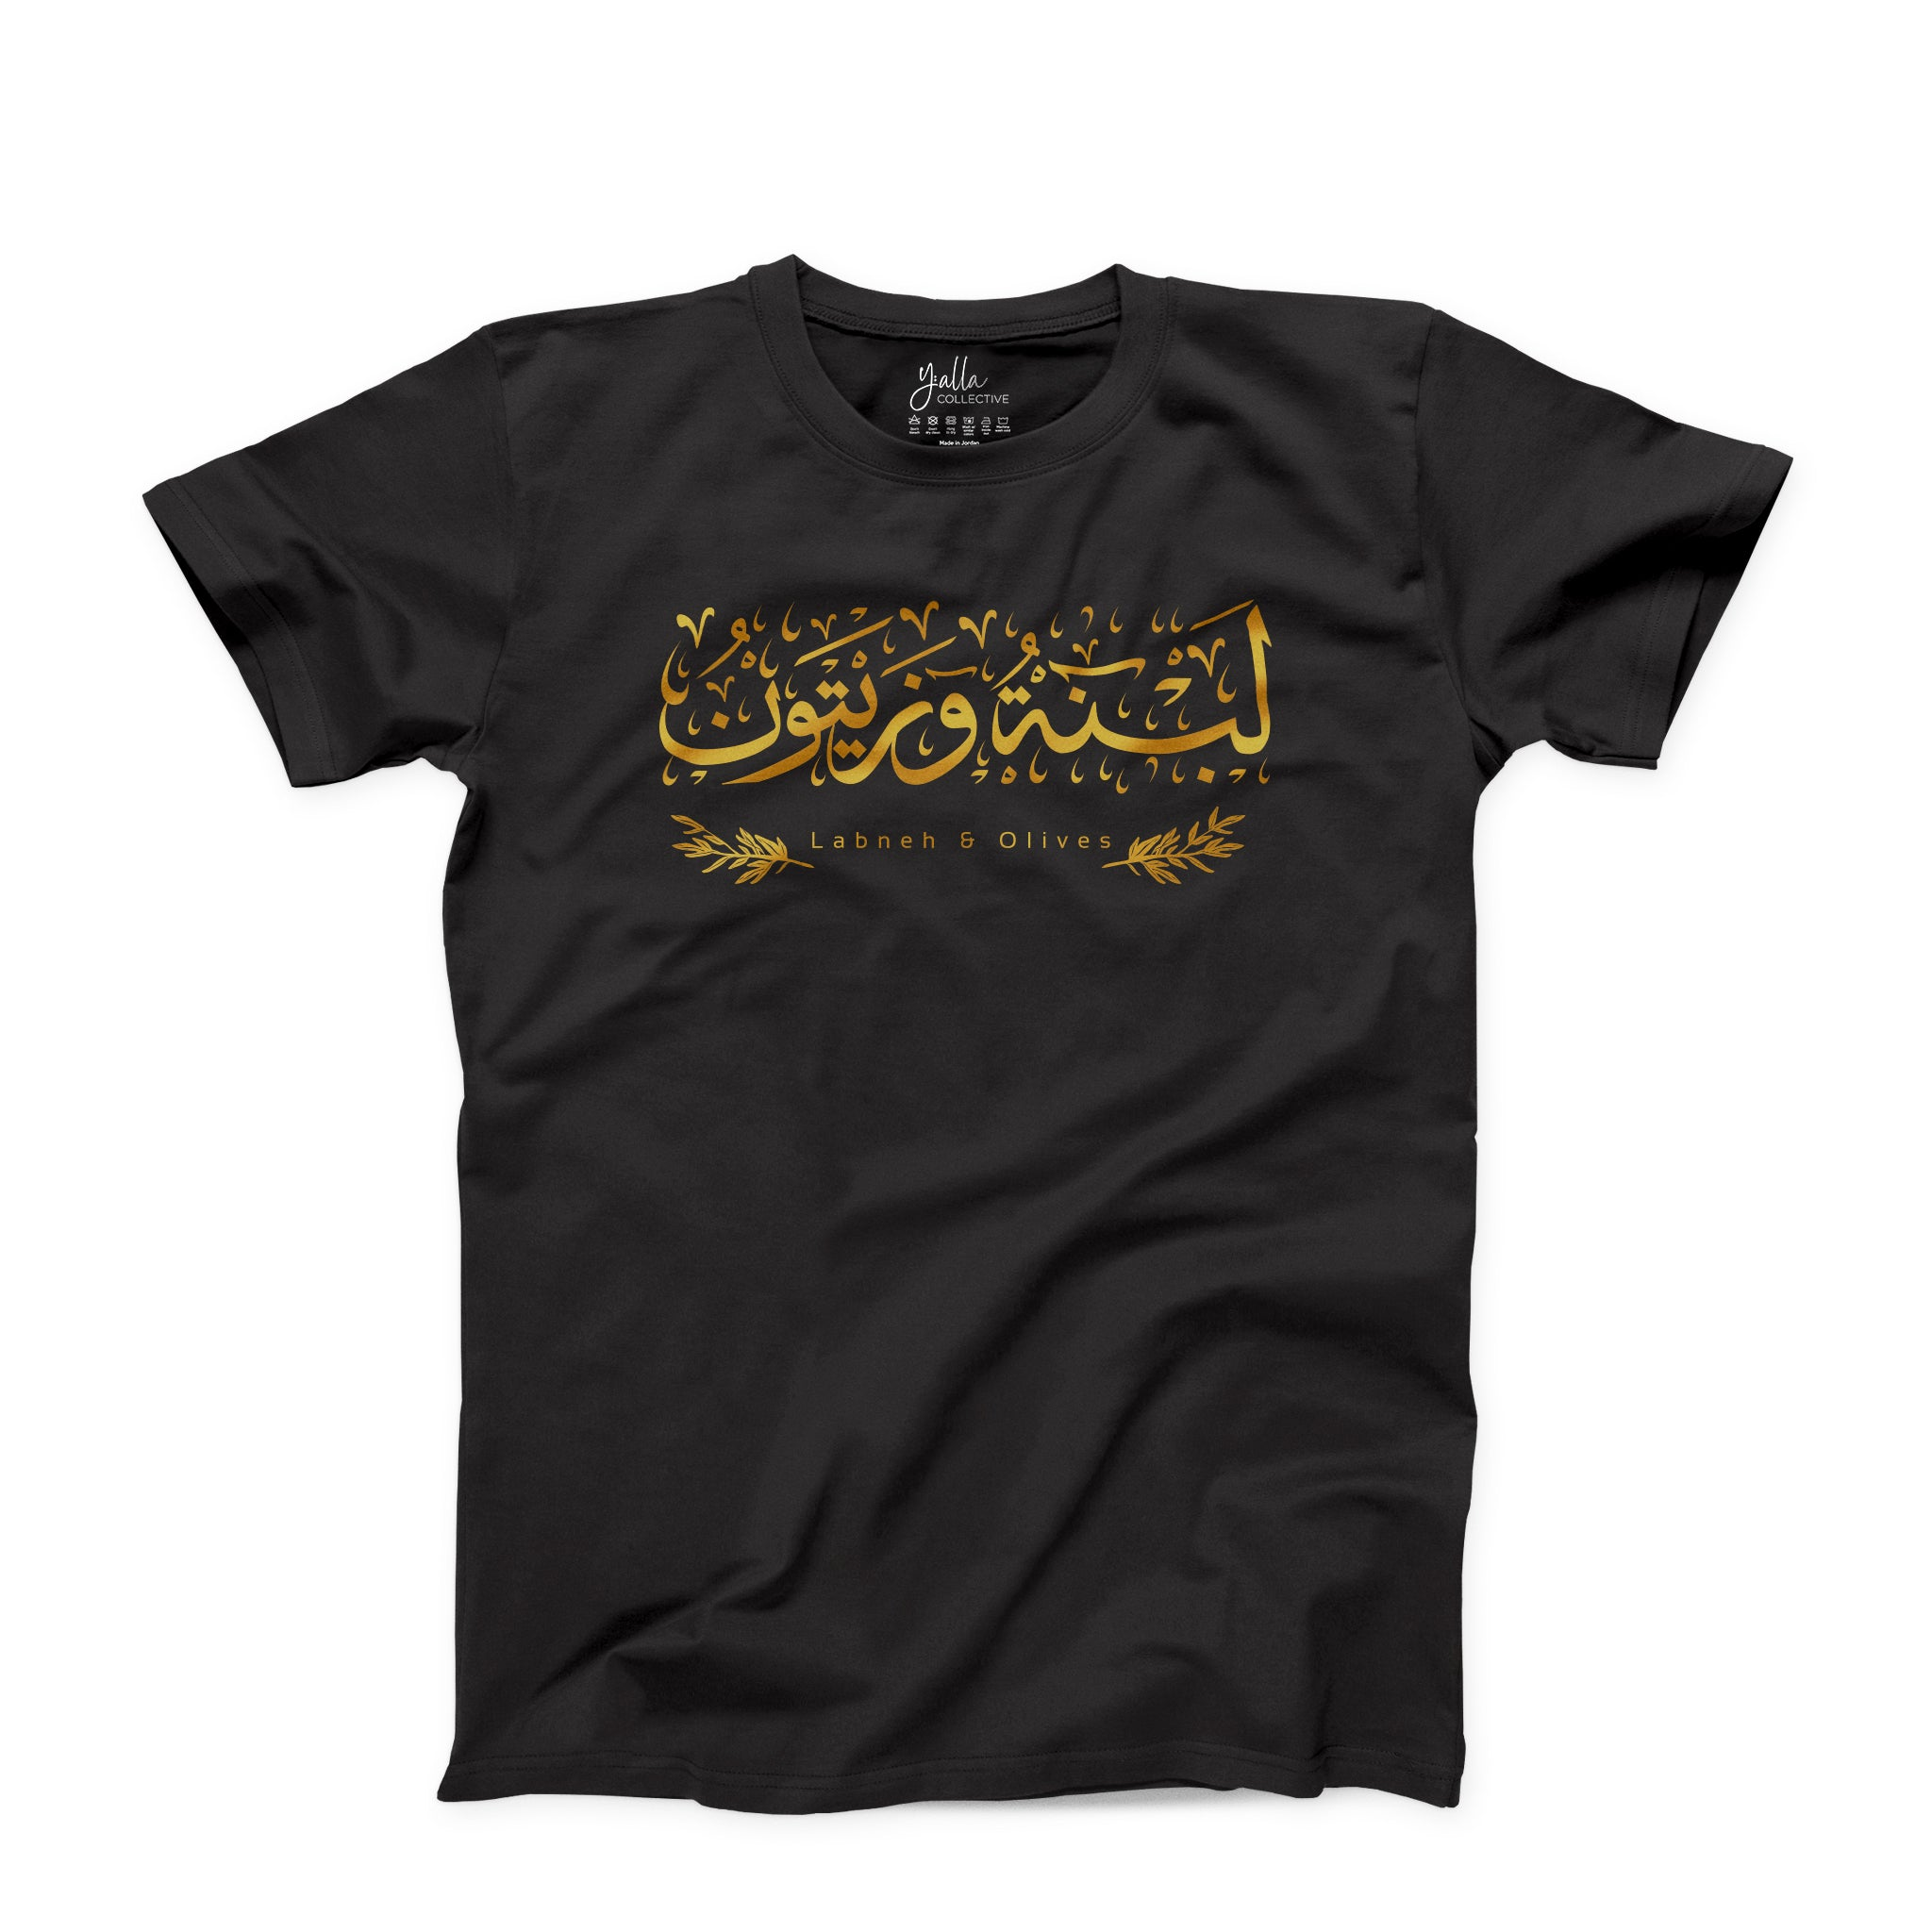 Arabic T-shirt with hand written calligraphy